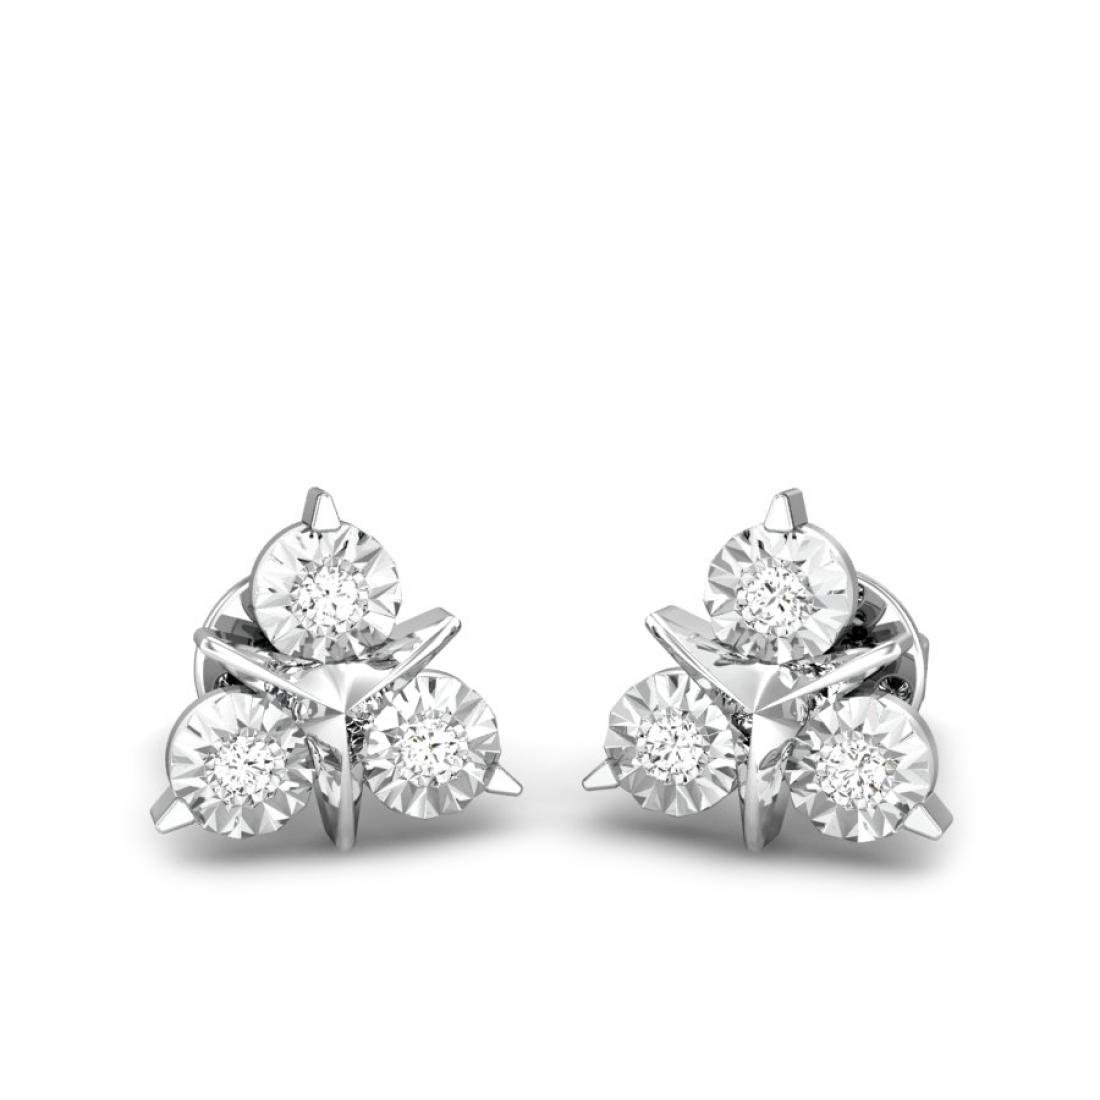 925 Sterling Silver 0.06 ctw Round Diamonds Miracle Plate Earrings for Her (IGI, I-J, SI1-SI2)